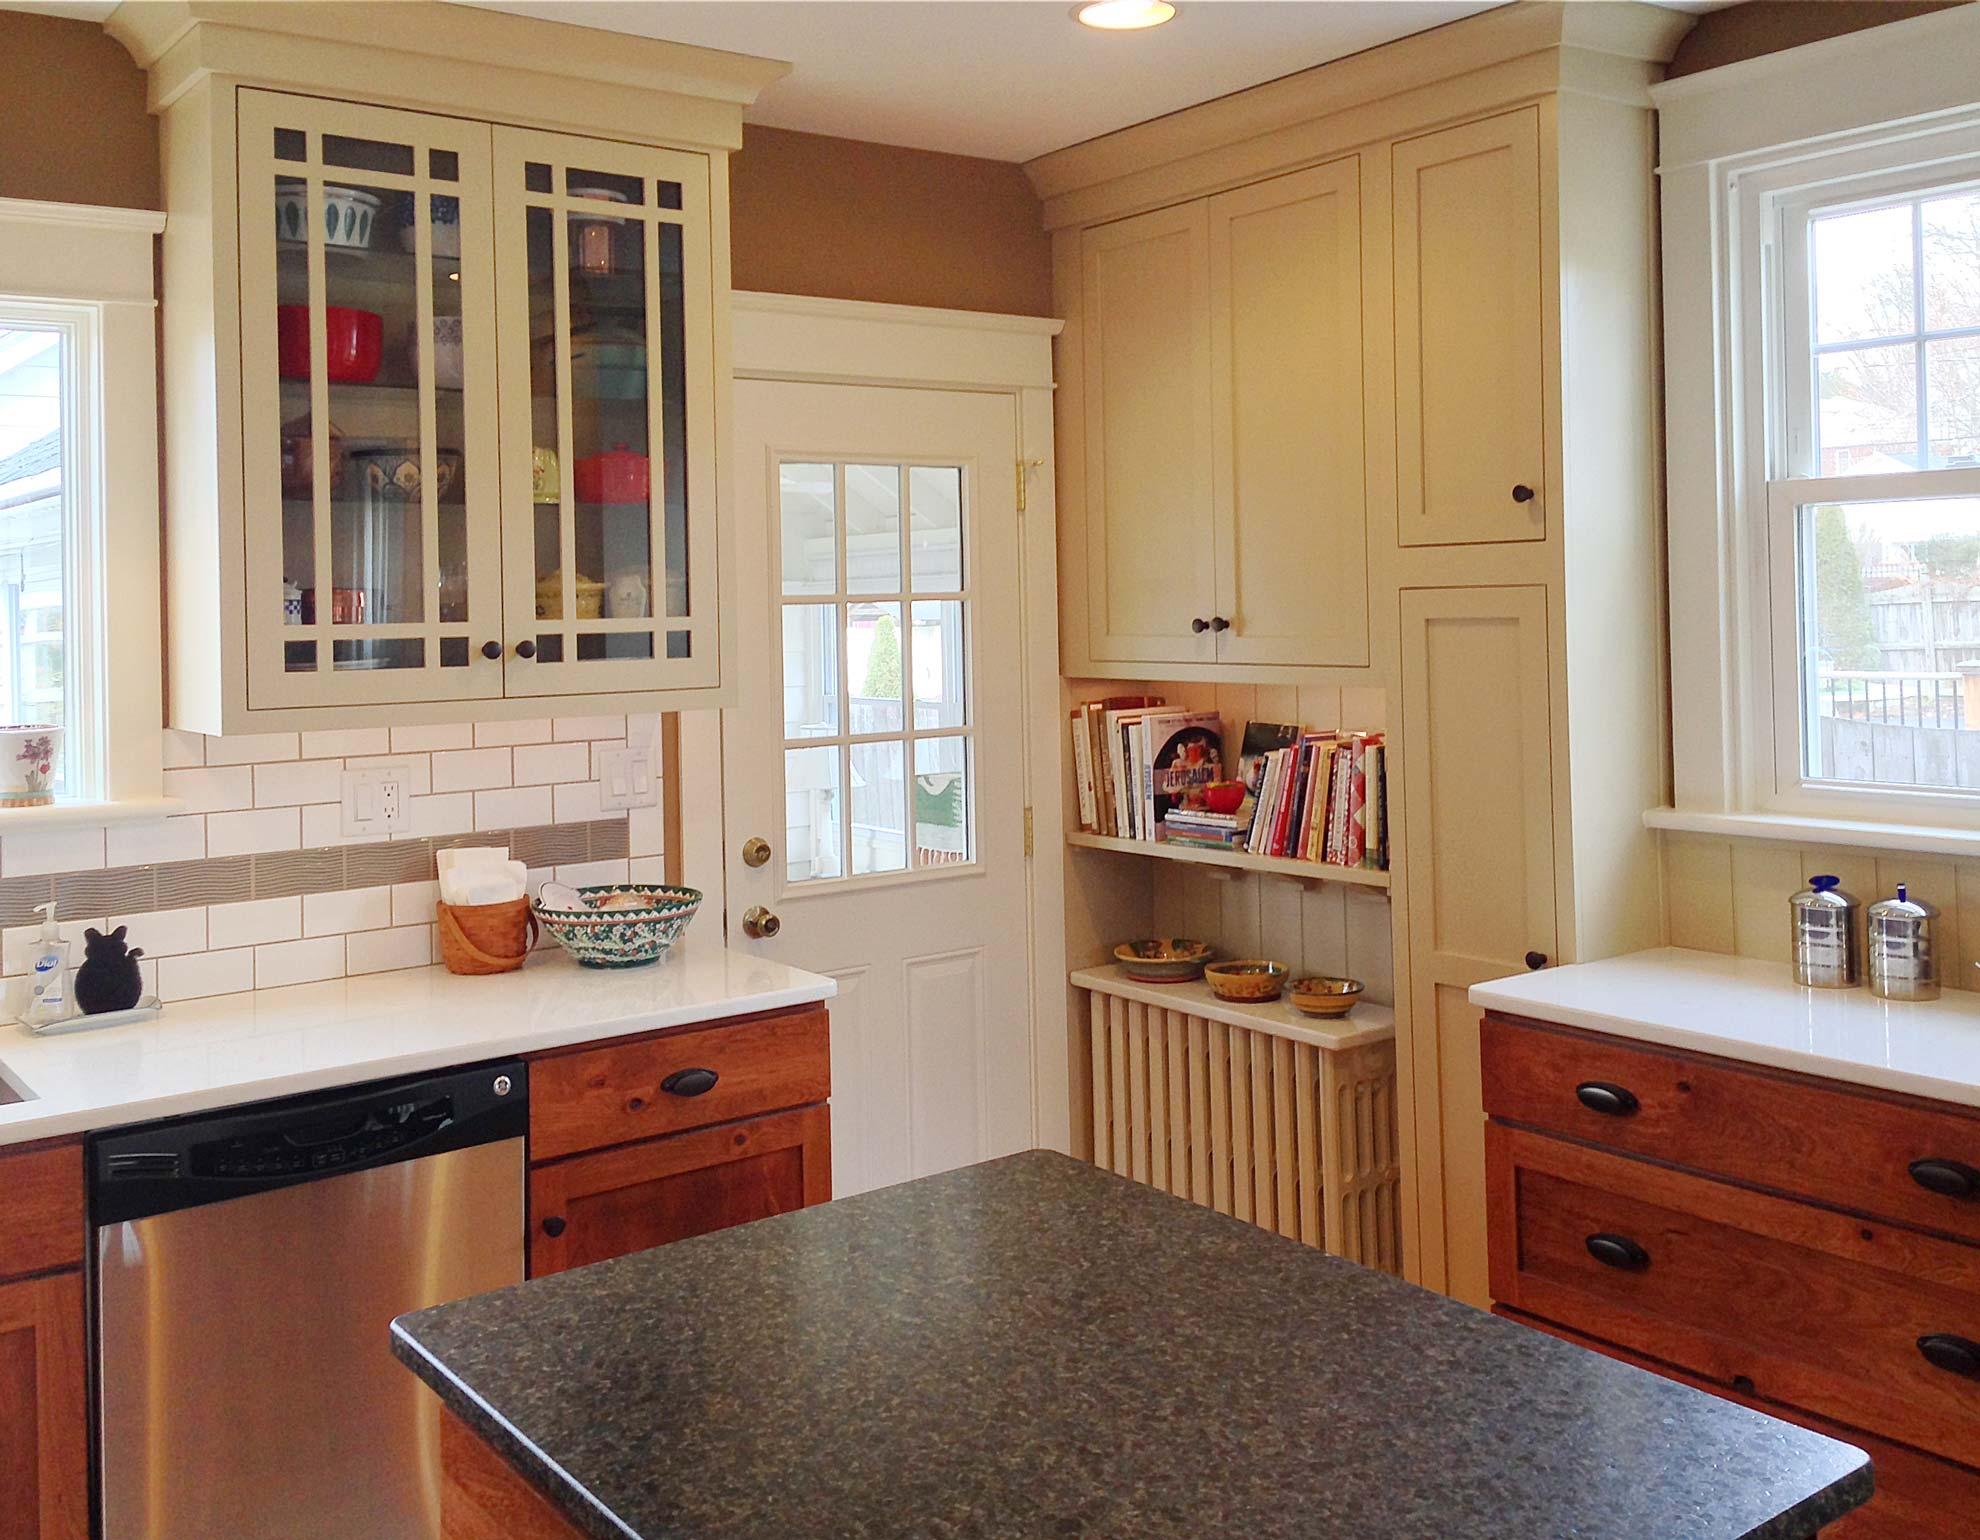 camp hill s colonial colonial kitchen sink Increasing Functional Storage Space